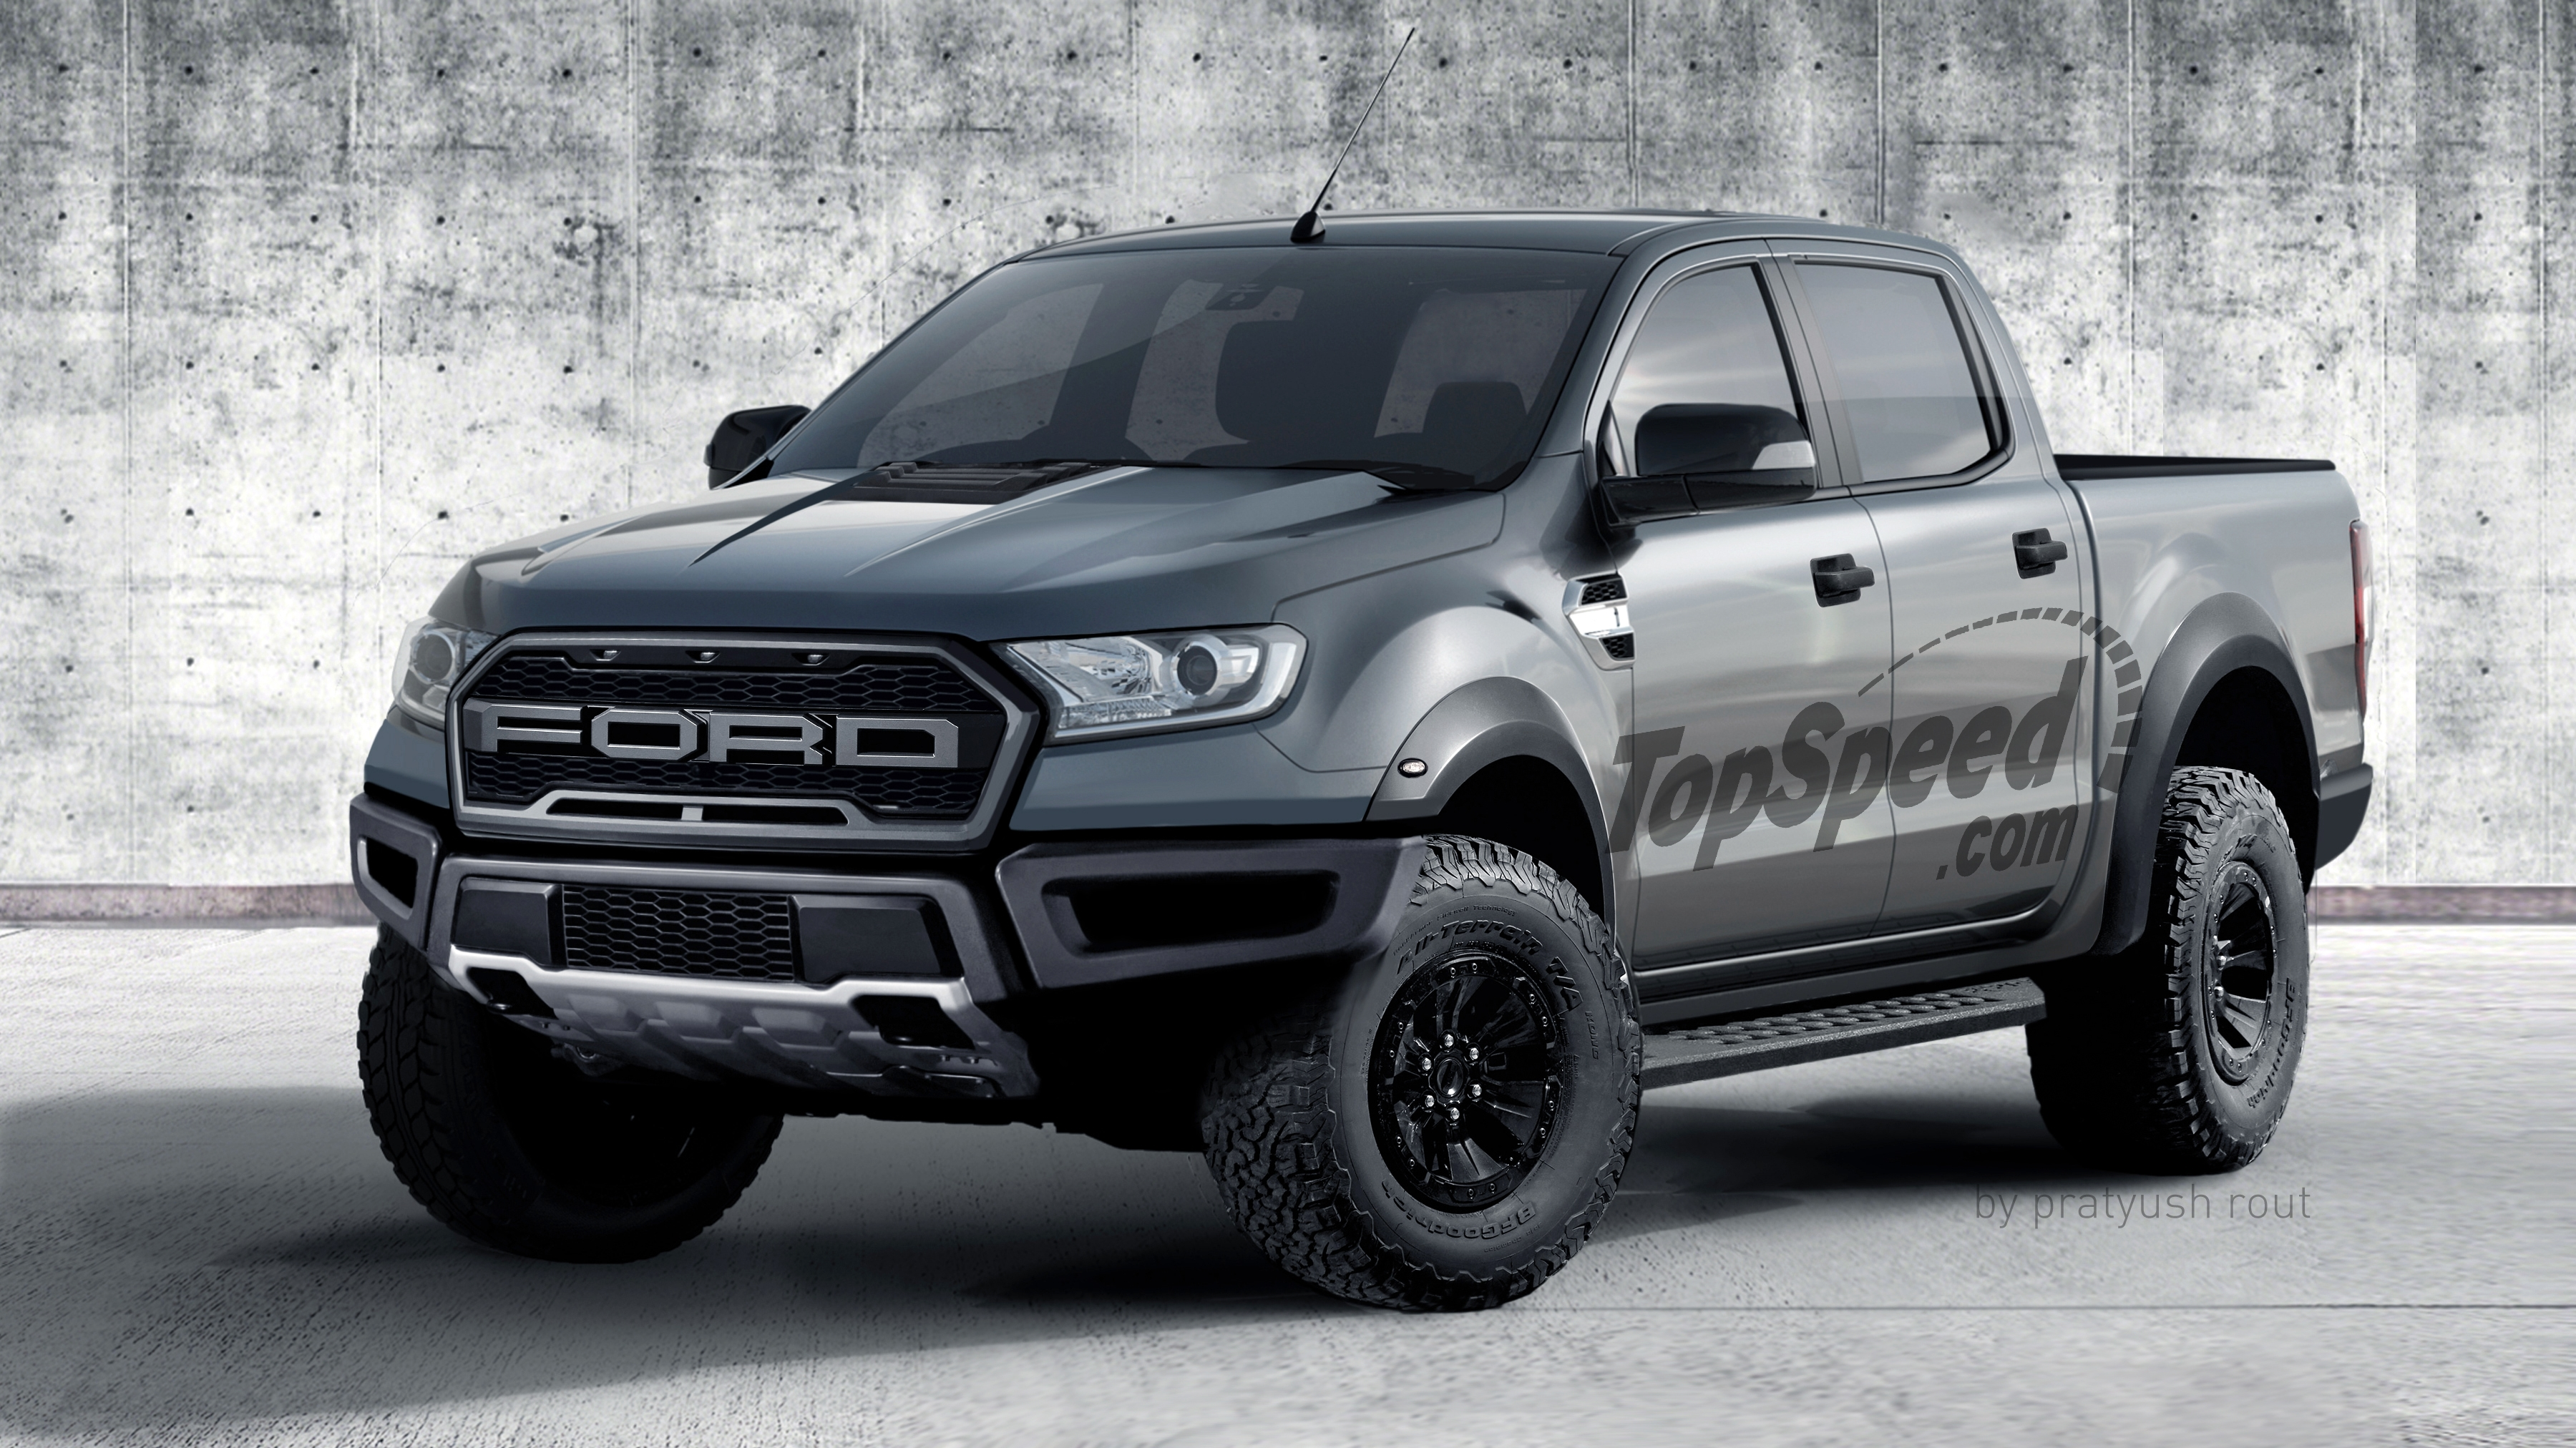 upcoming ford ranger raptor might go diesel news top speed. Black Bedroom Furniture Sets. Home Design Ideas